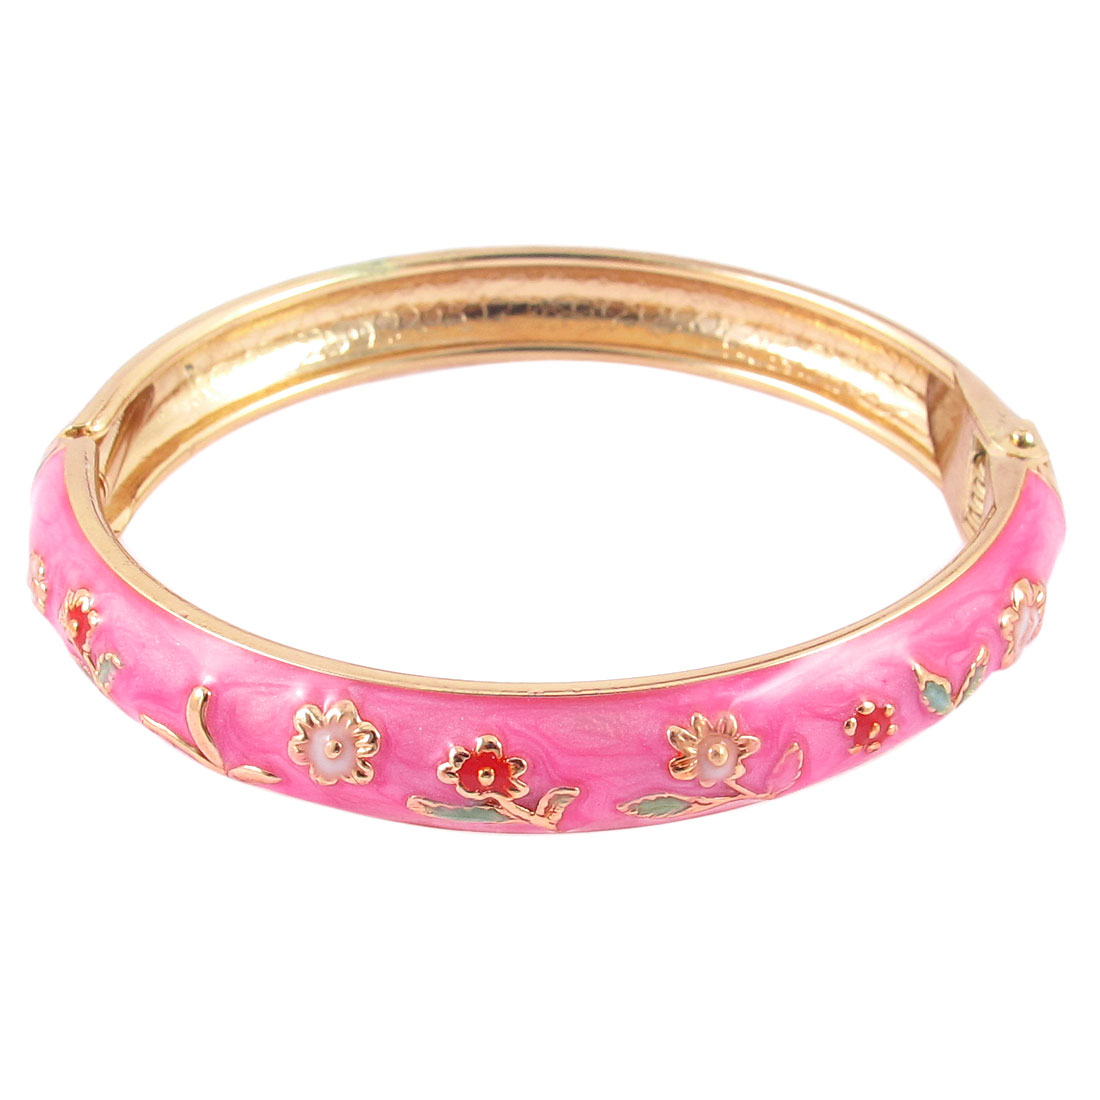 Girl Spring Closure Mini Flower Enamel Bracelet Bangle Party Gift Pink